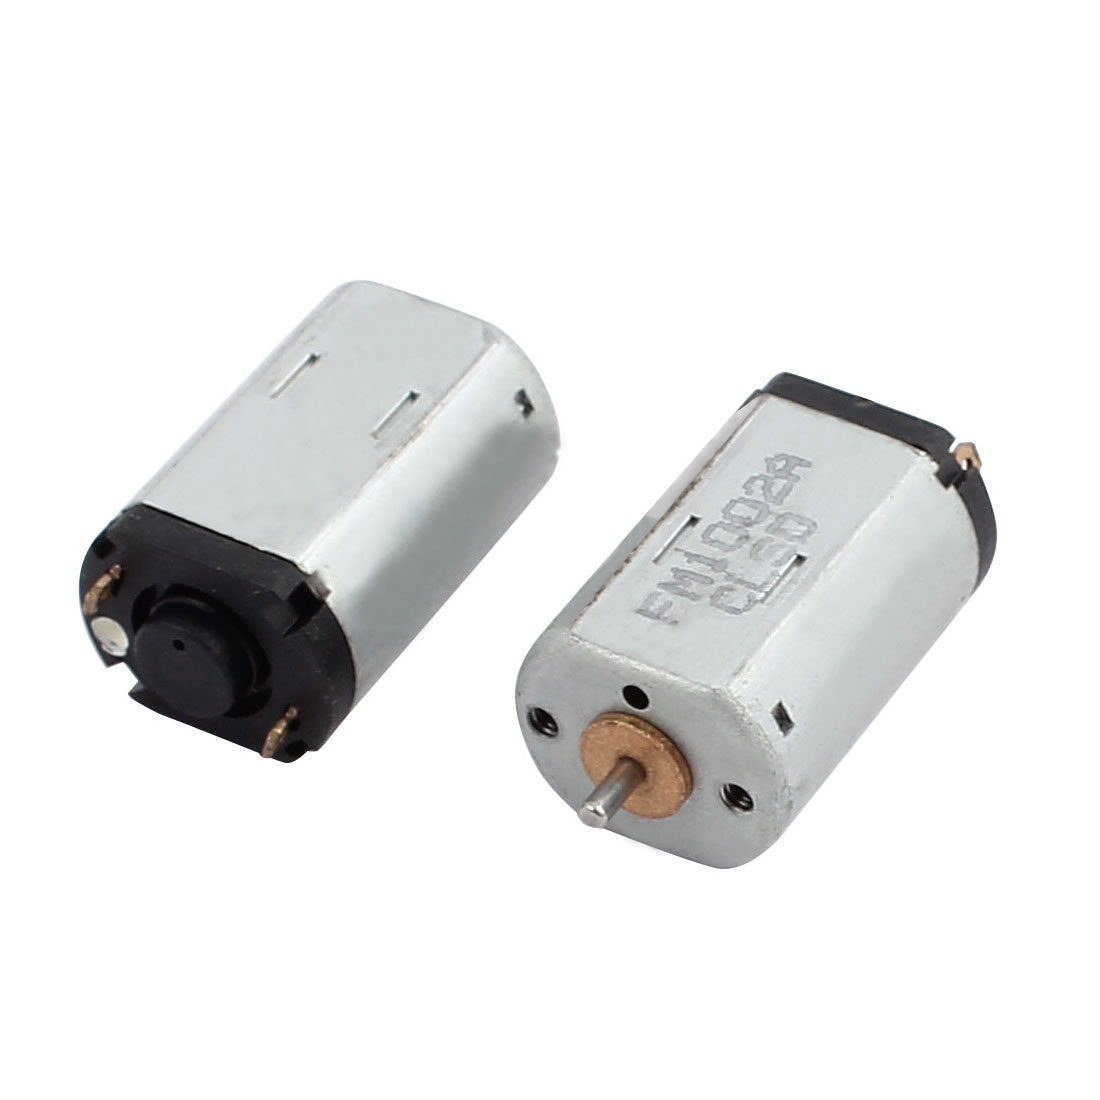 2Pcs DC1.5V-6V 21500RPM Rotary Speed Electric Mini Motor M20 for DIY Model Toy